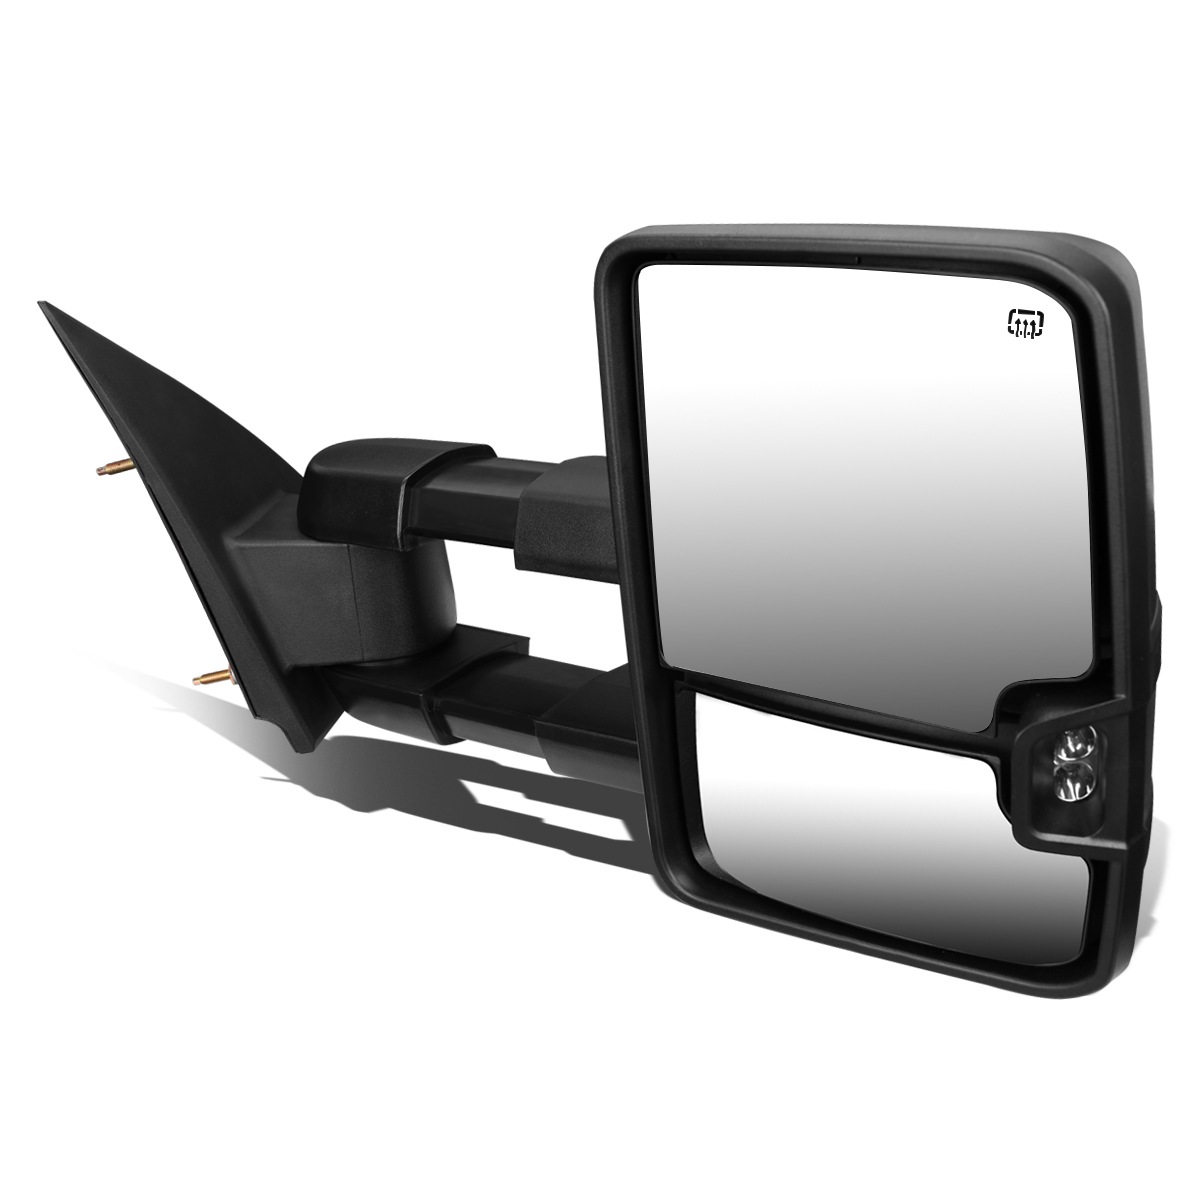 For 2014-2017 Chevy Silverado/GMC Sierra Powered+Heated+Smoked LED Turn Signal Towing Mirror (Right/Passenger)